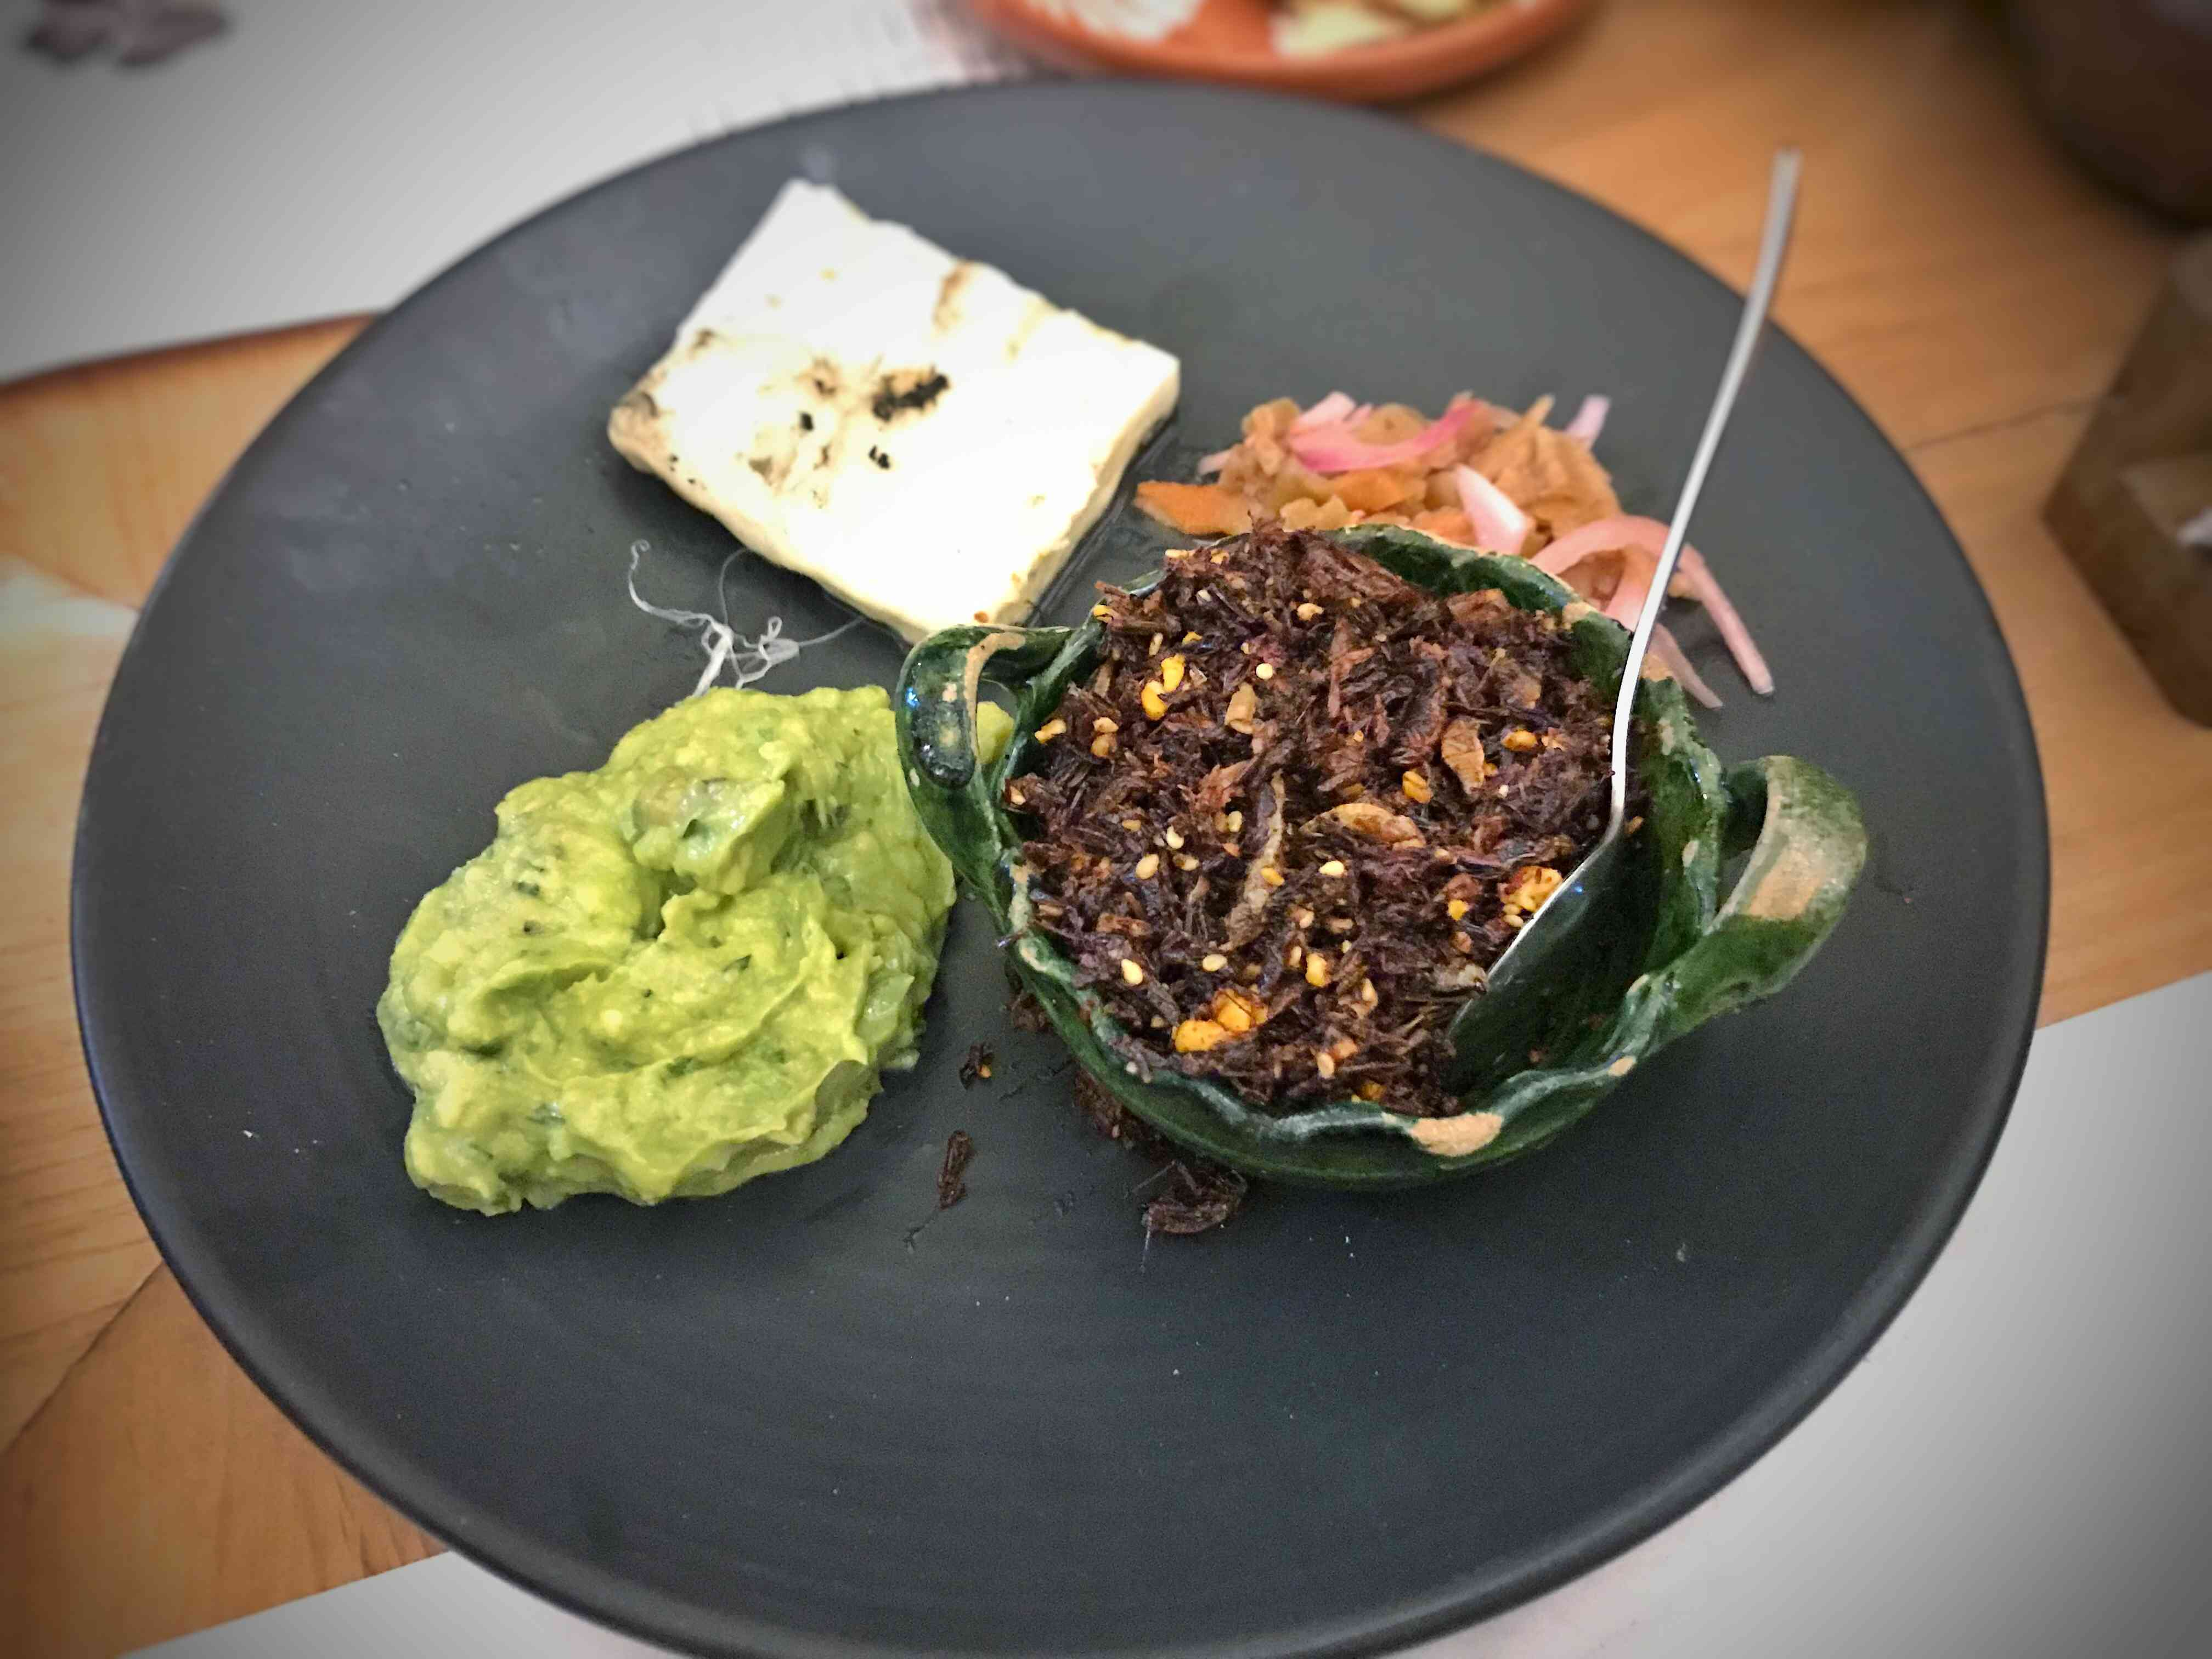 fried grasshoppers with chili flakes in a small green bowl with a spoon. THe bowl is a placte with mashed avocado, queso fresco, and pickled onion from Chapulines in Mexico city